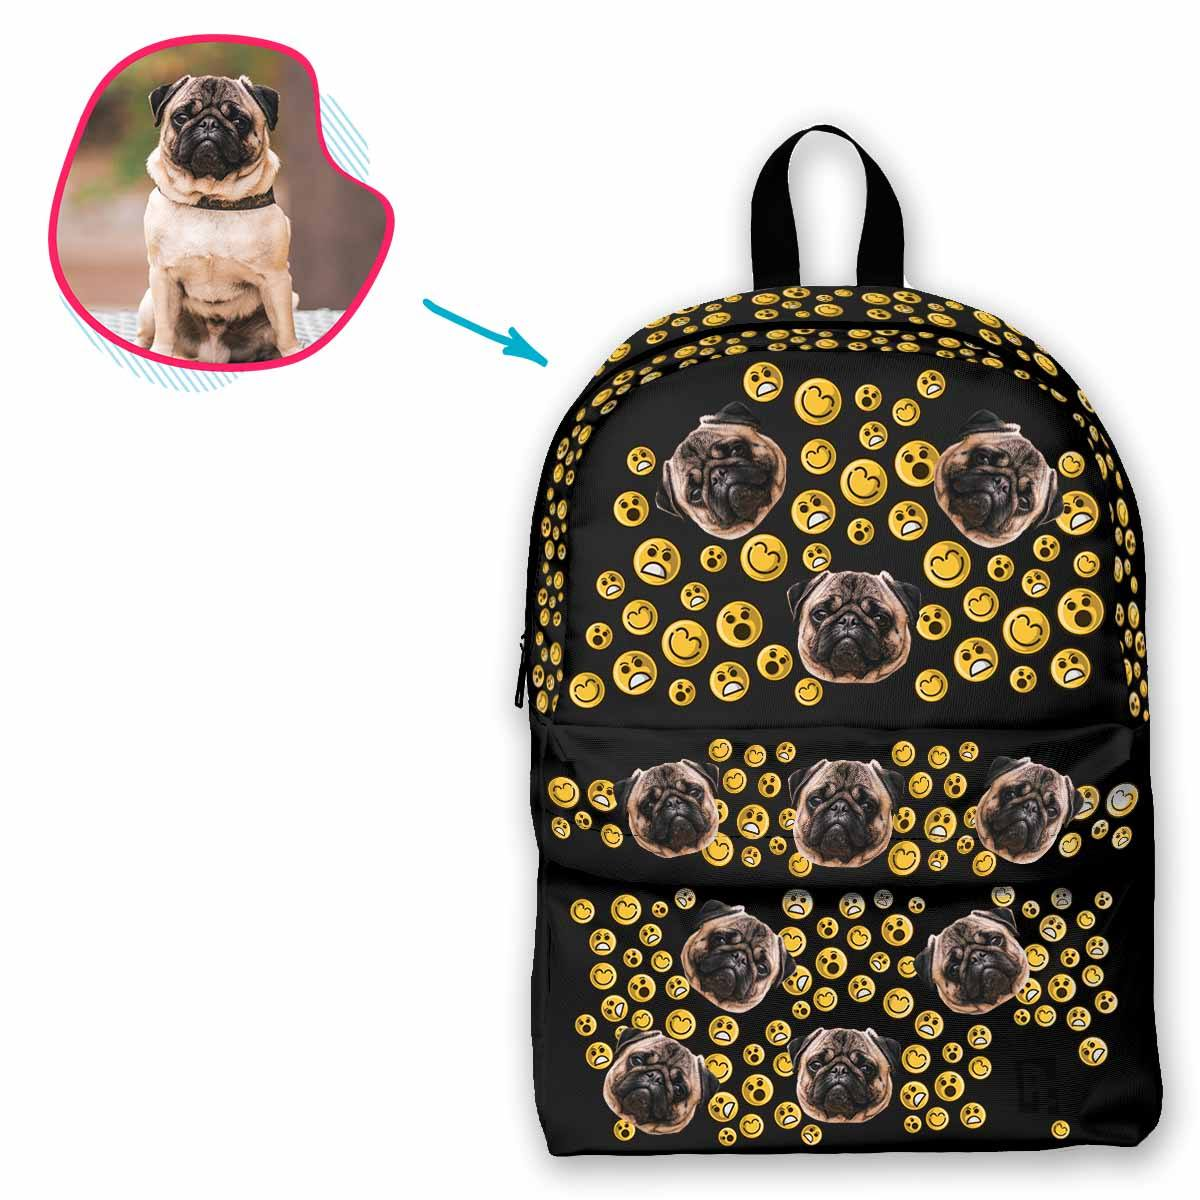 dark Smiles classic backpack personalized with photo of face printed on it